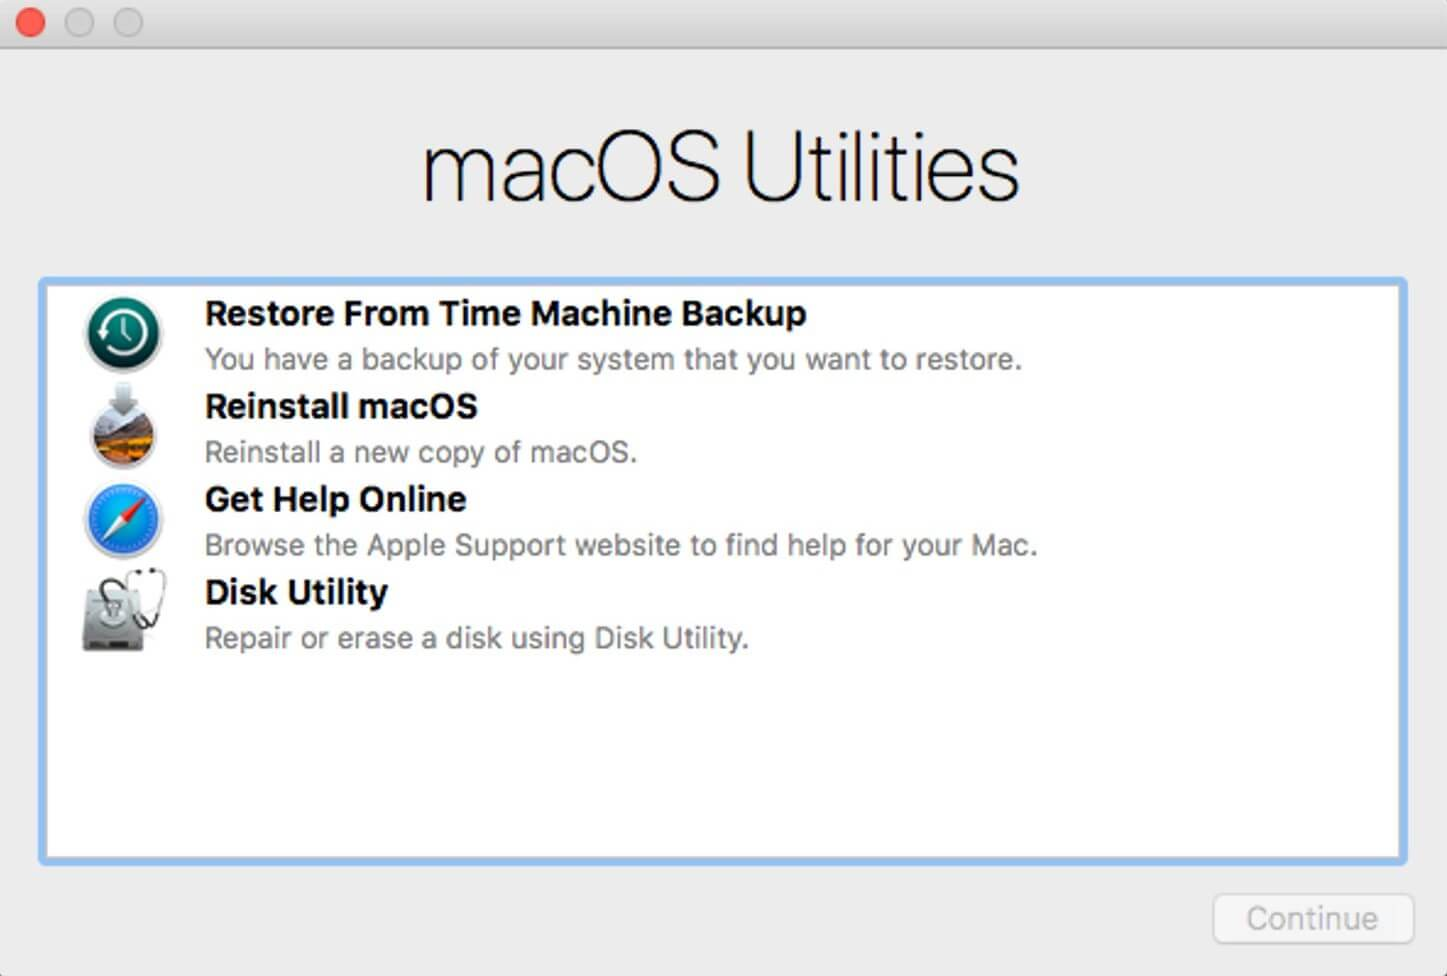 macos utilities screen